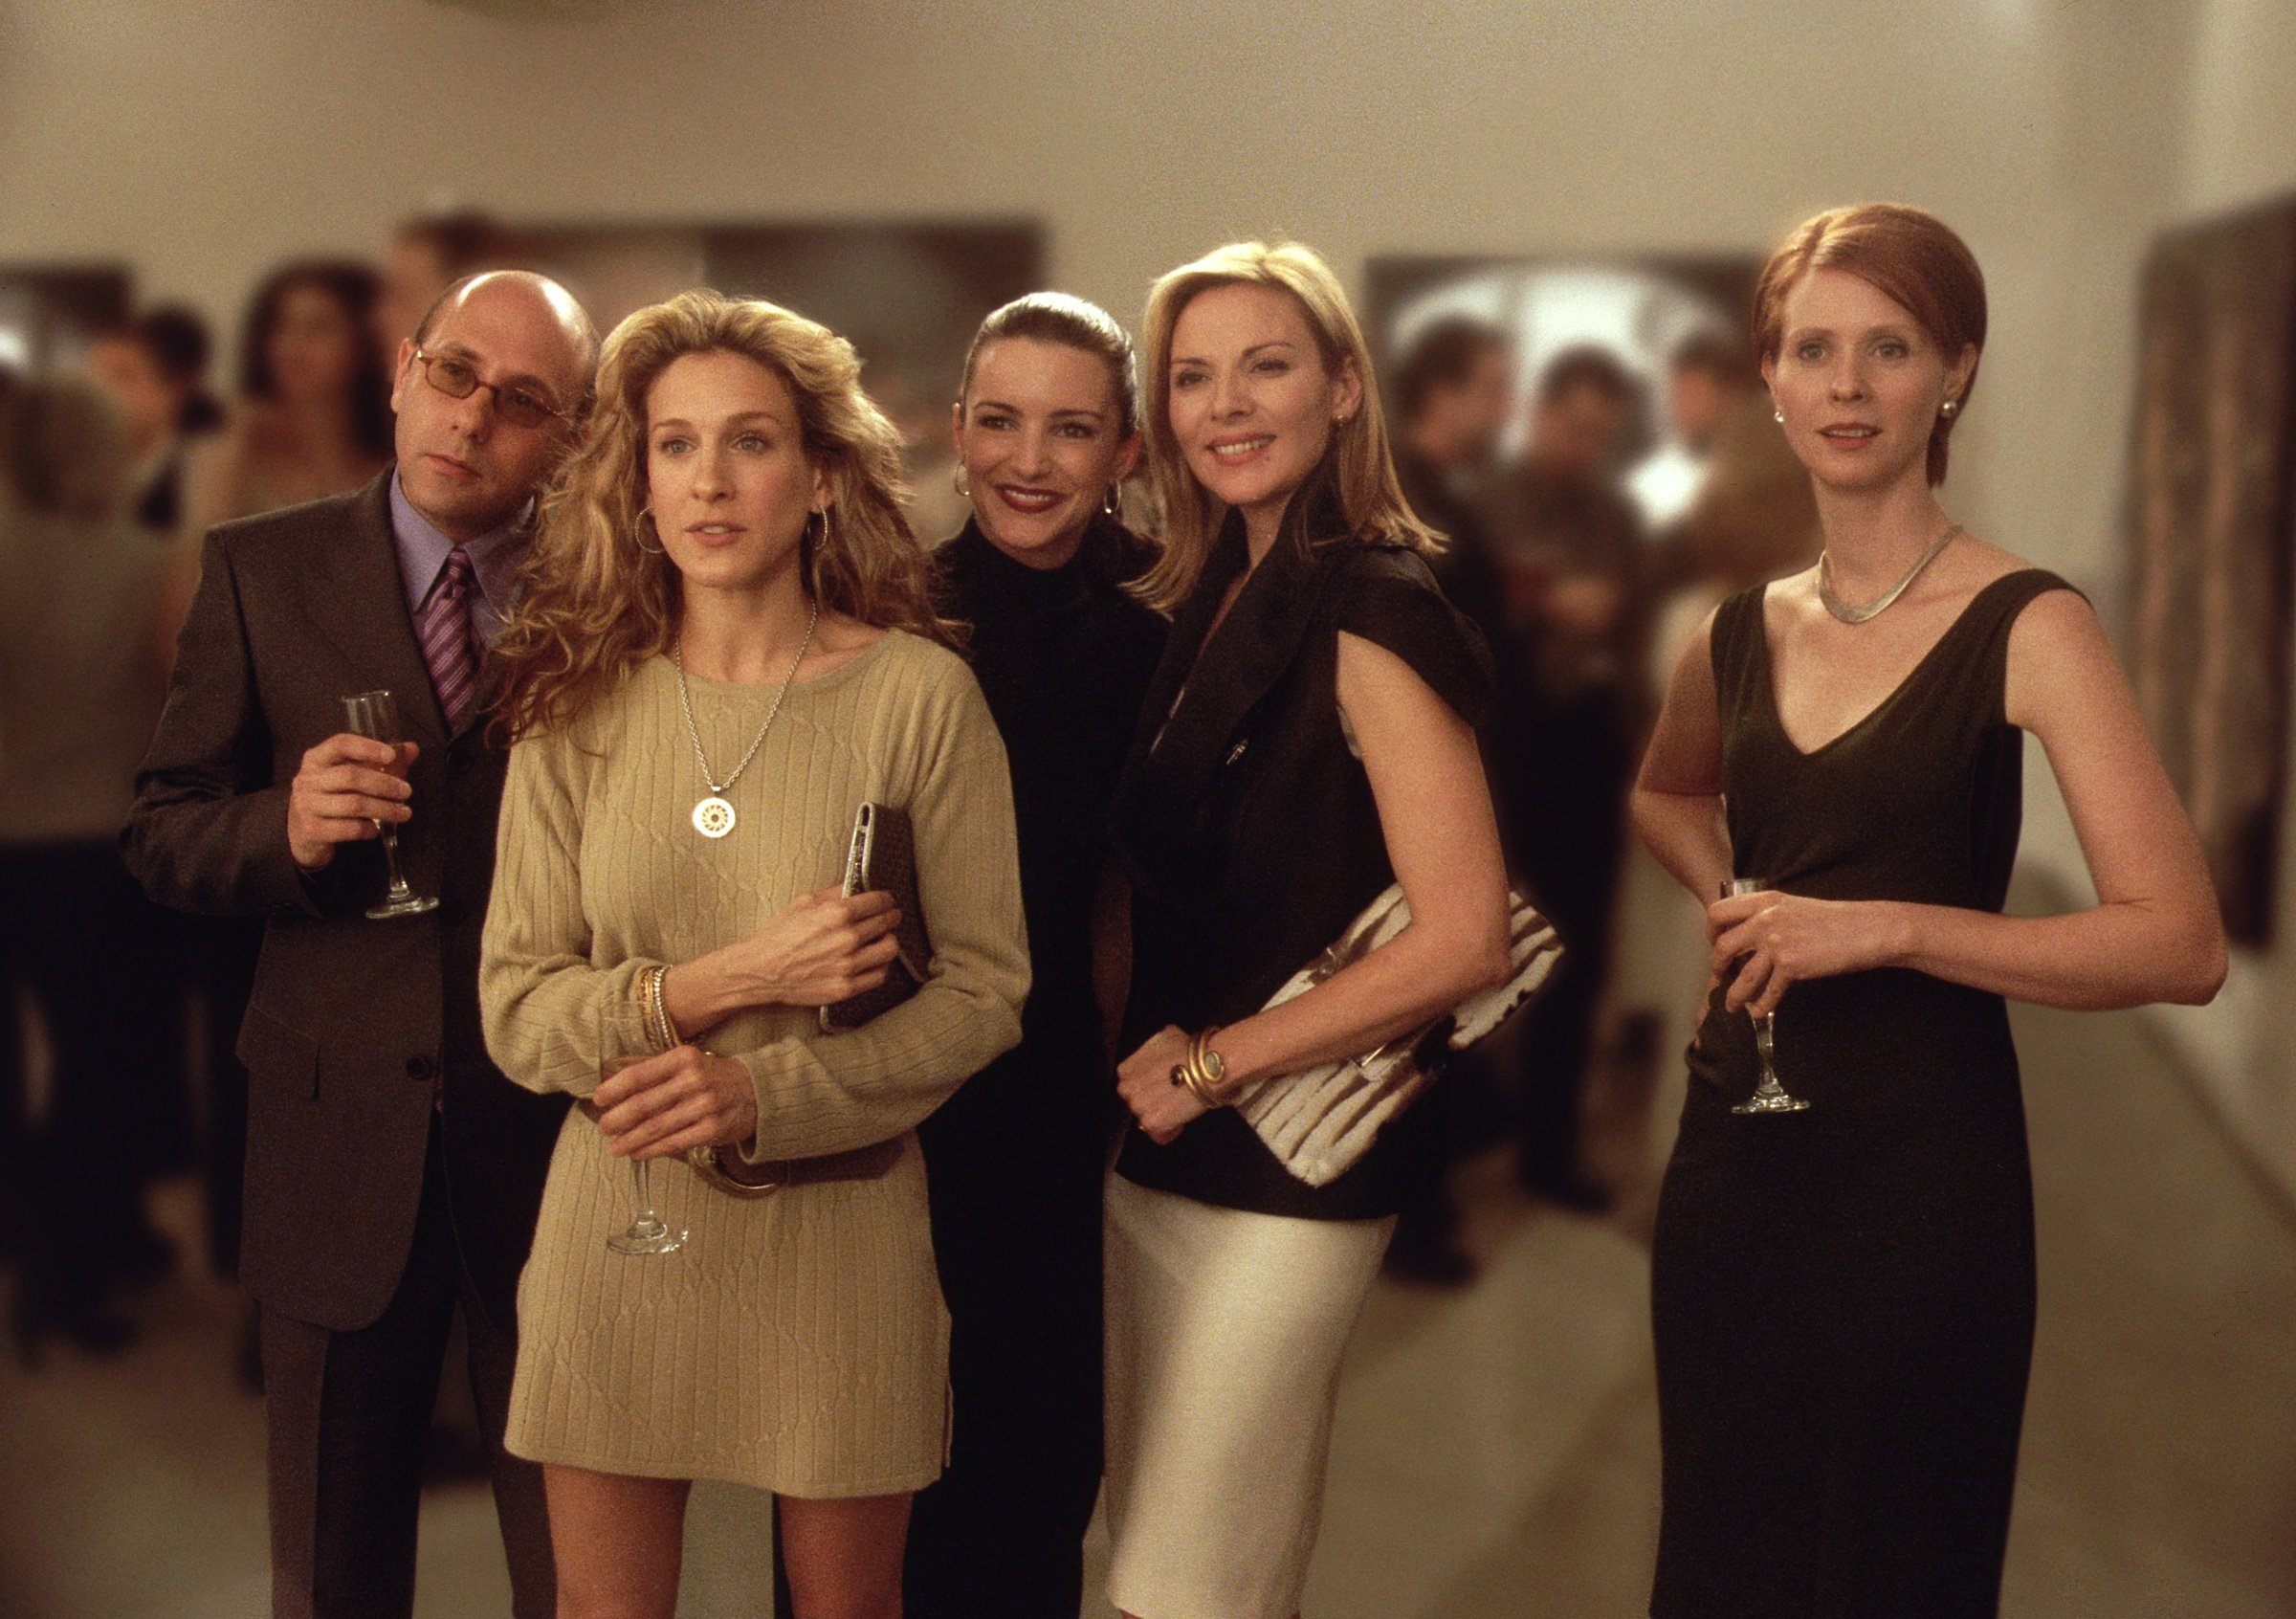 """Willie Garson, Sarah Jessica Parker, Kristin Davis, Kim Cattrall, and Cynthia Nixon pictured during the third season of """"Sex and the City,"""" 